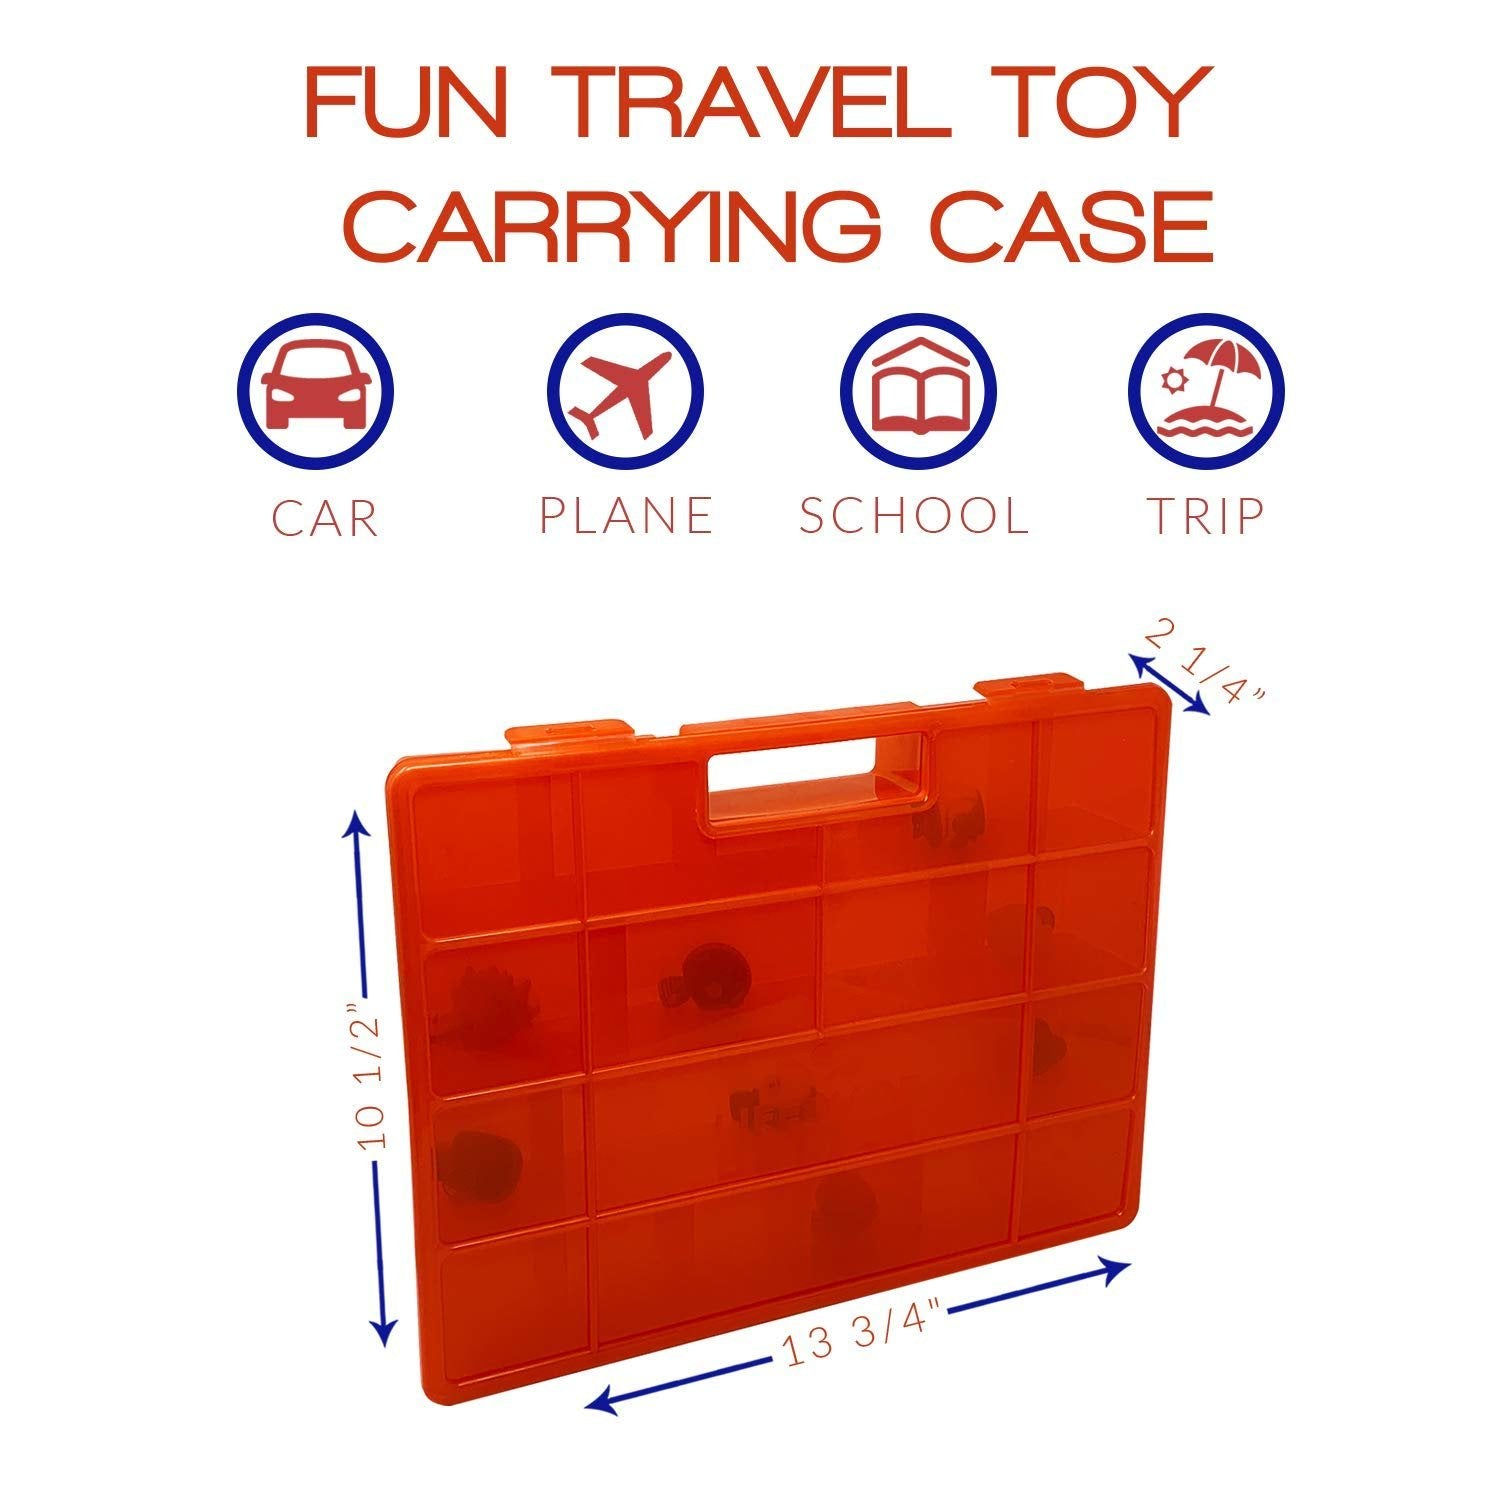 Life Made Better New 2.0 Toy Storage, Organizer, and Carrying Case in Red. Compatible with Transformer BotBot Figures, Includes Carrying Handle and Secure Clasp System